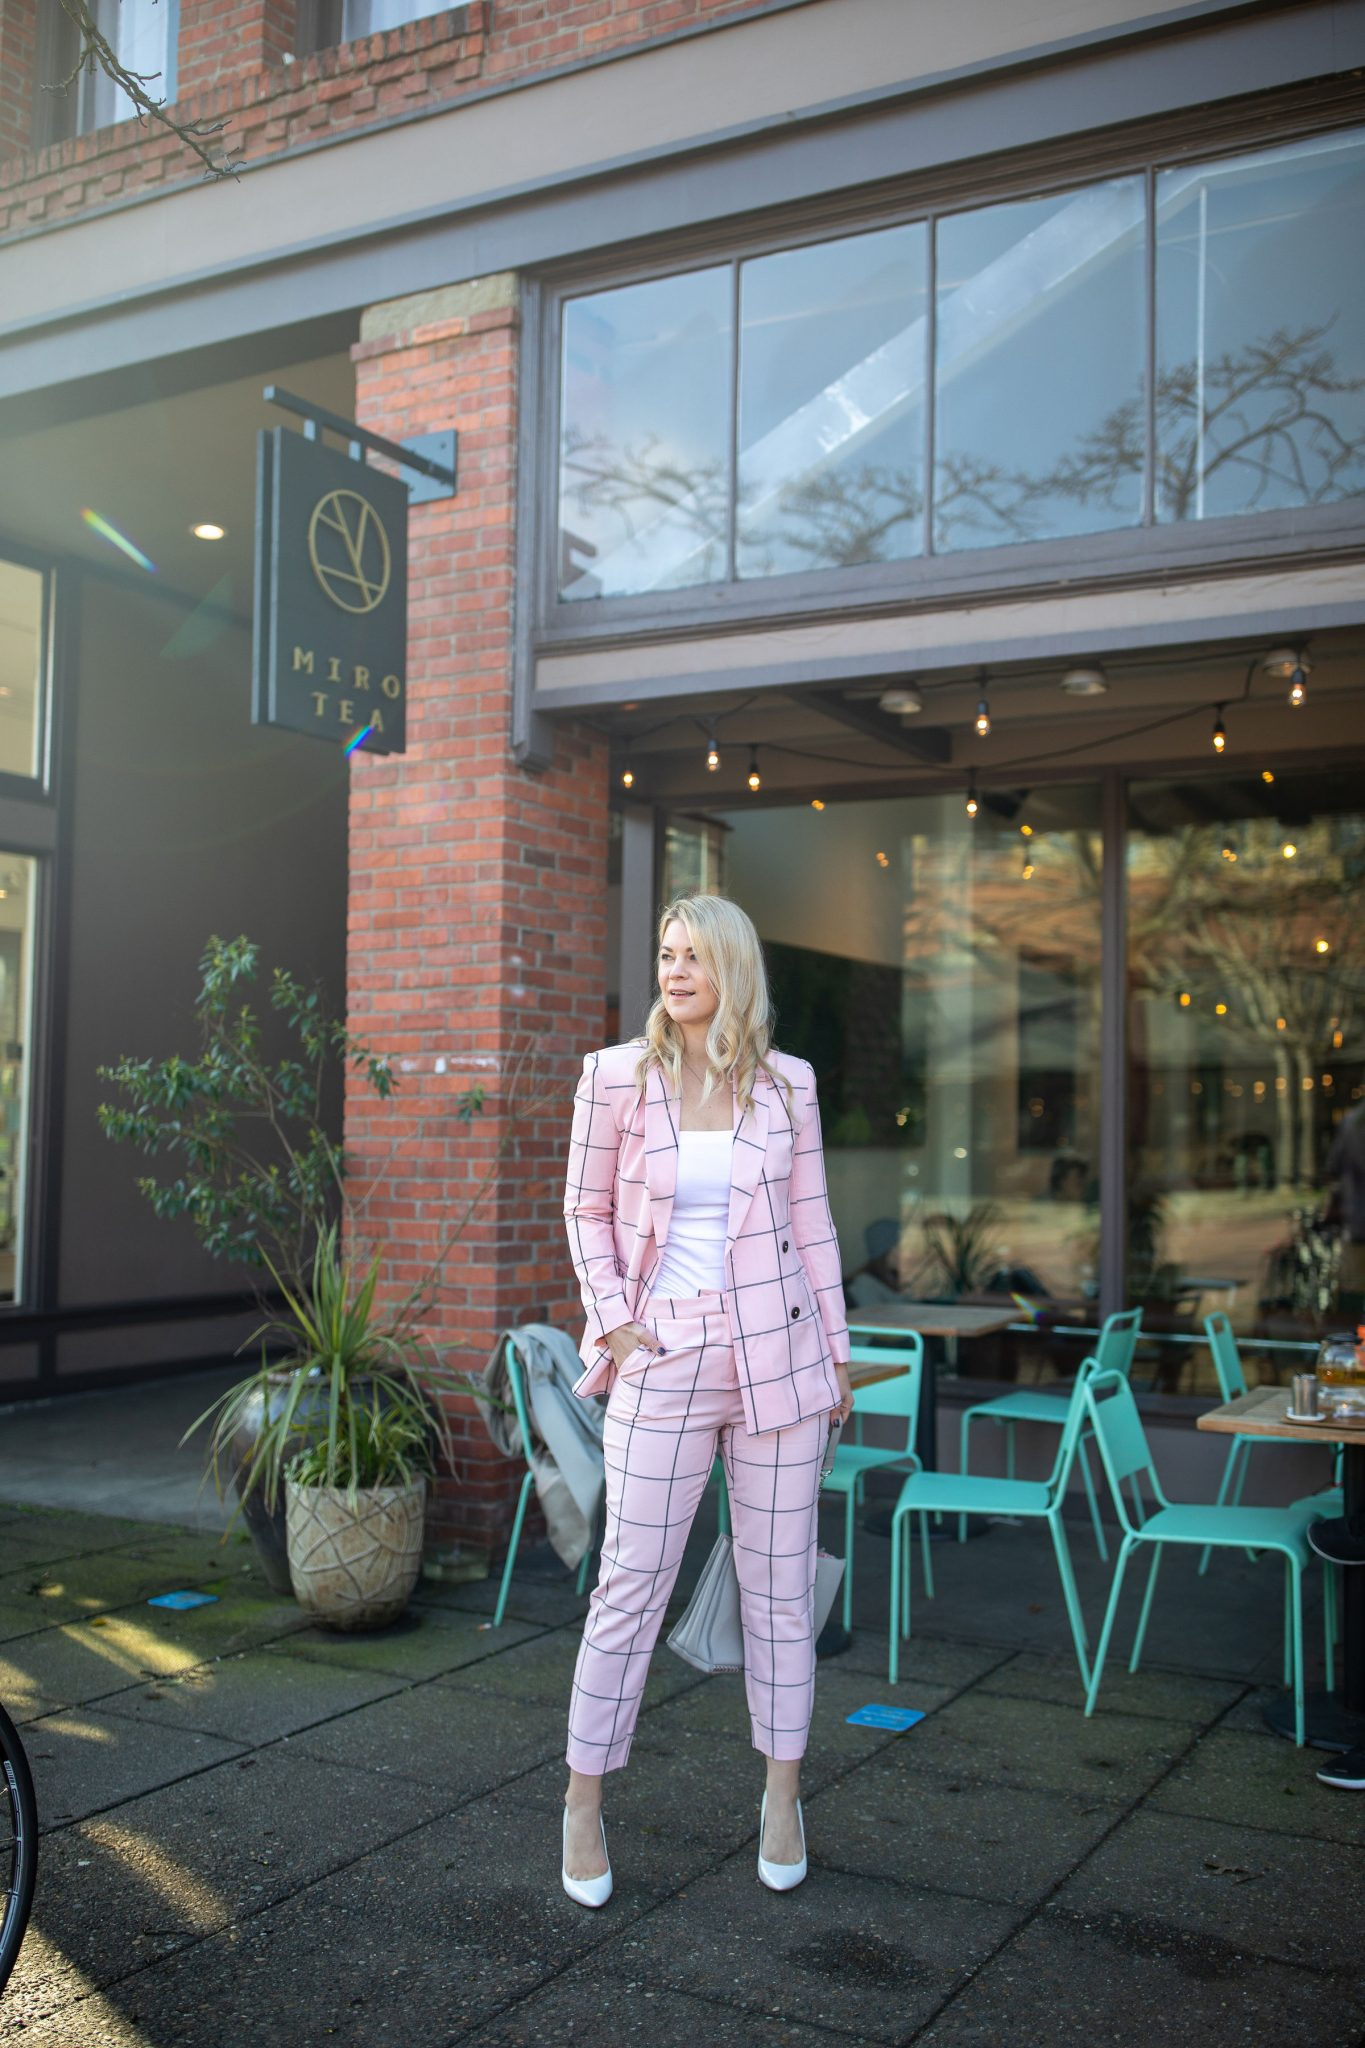 ASOS Pink Suit styled for work by top Seattle tall fashion blogger, Whit Wanders: image of a woman standing in front of a coffee shop and wearing a ASOS Grid Suit, Sam Edelman Heels, and holding a Zara Purse.